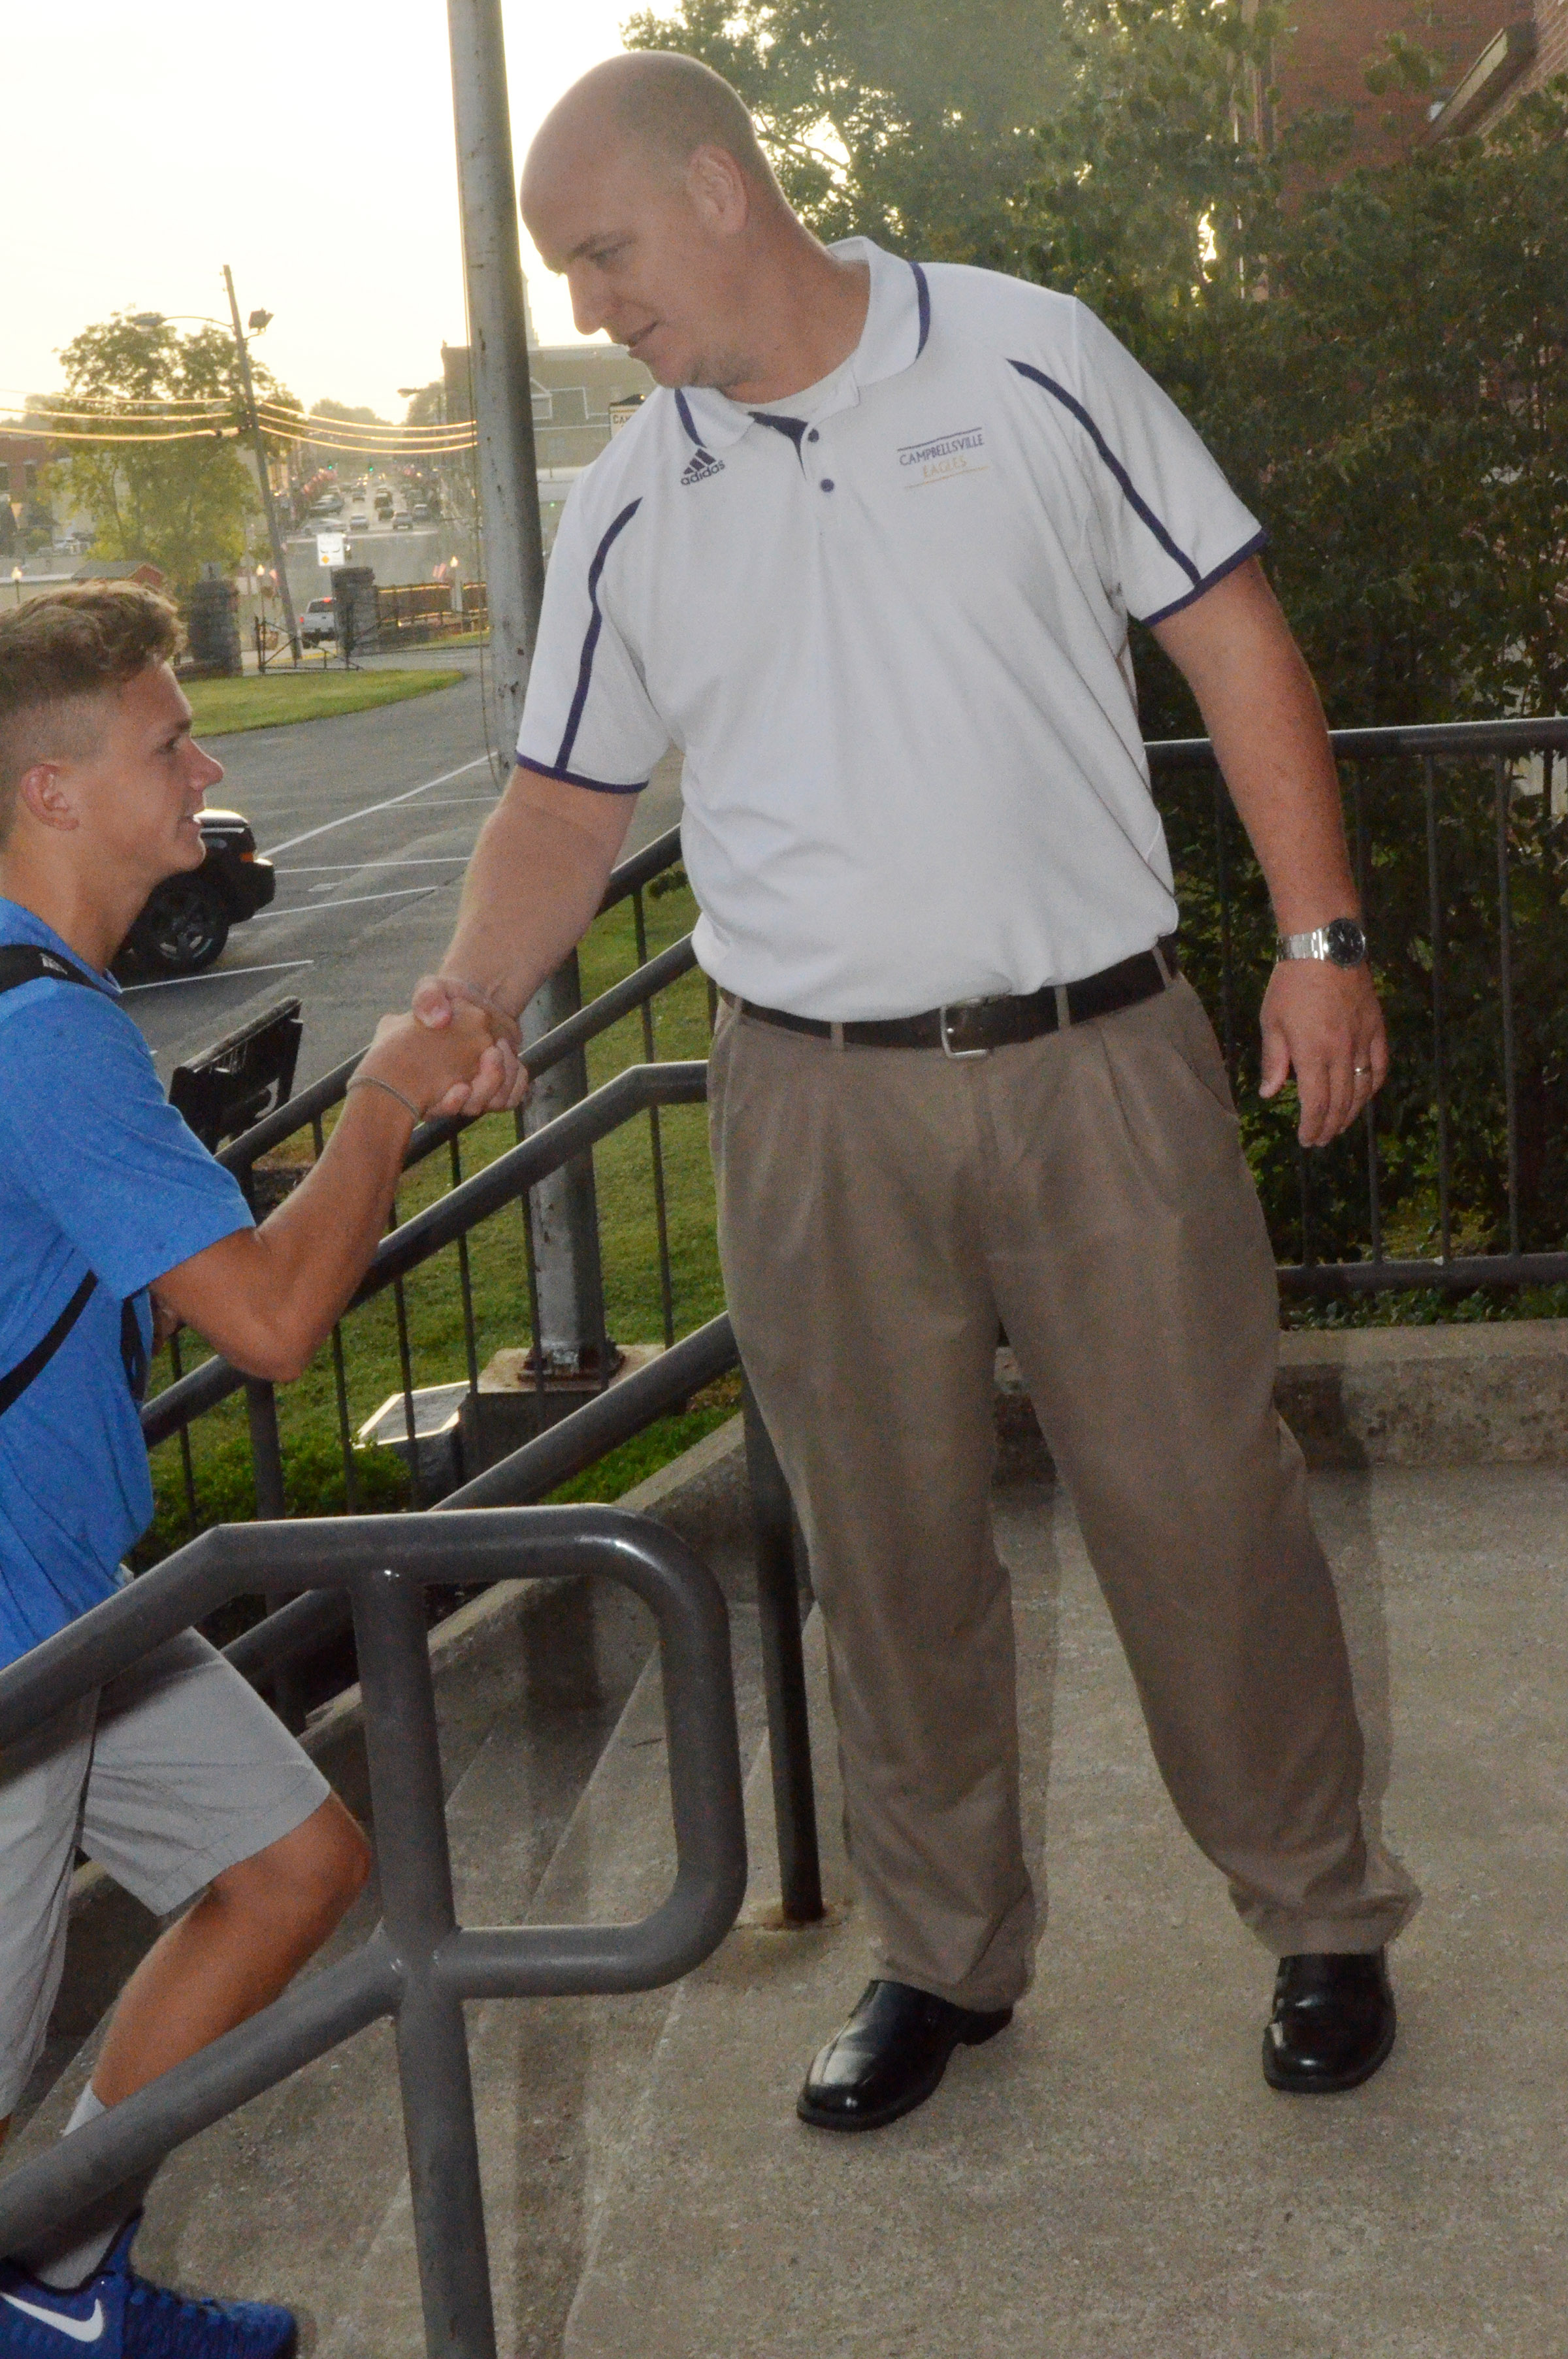 CHS Principal David Petett greets Blase Wheatley on the third day of his freshman year.